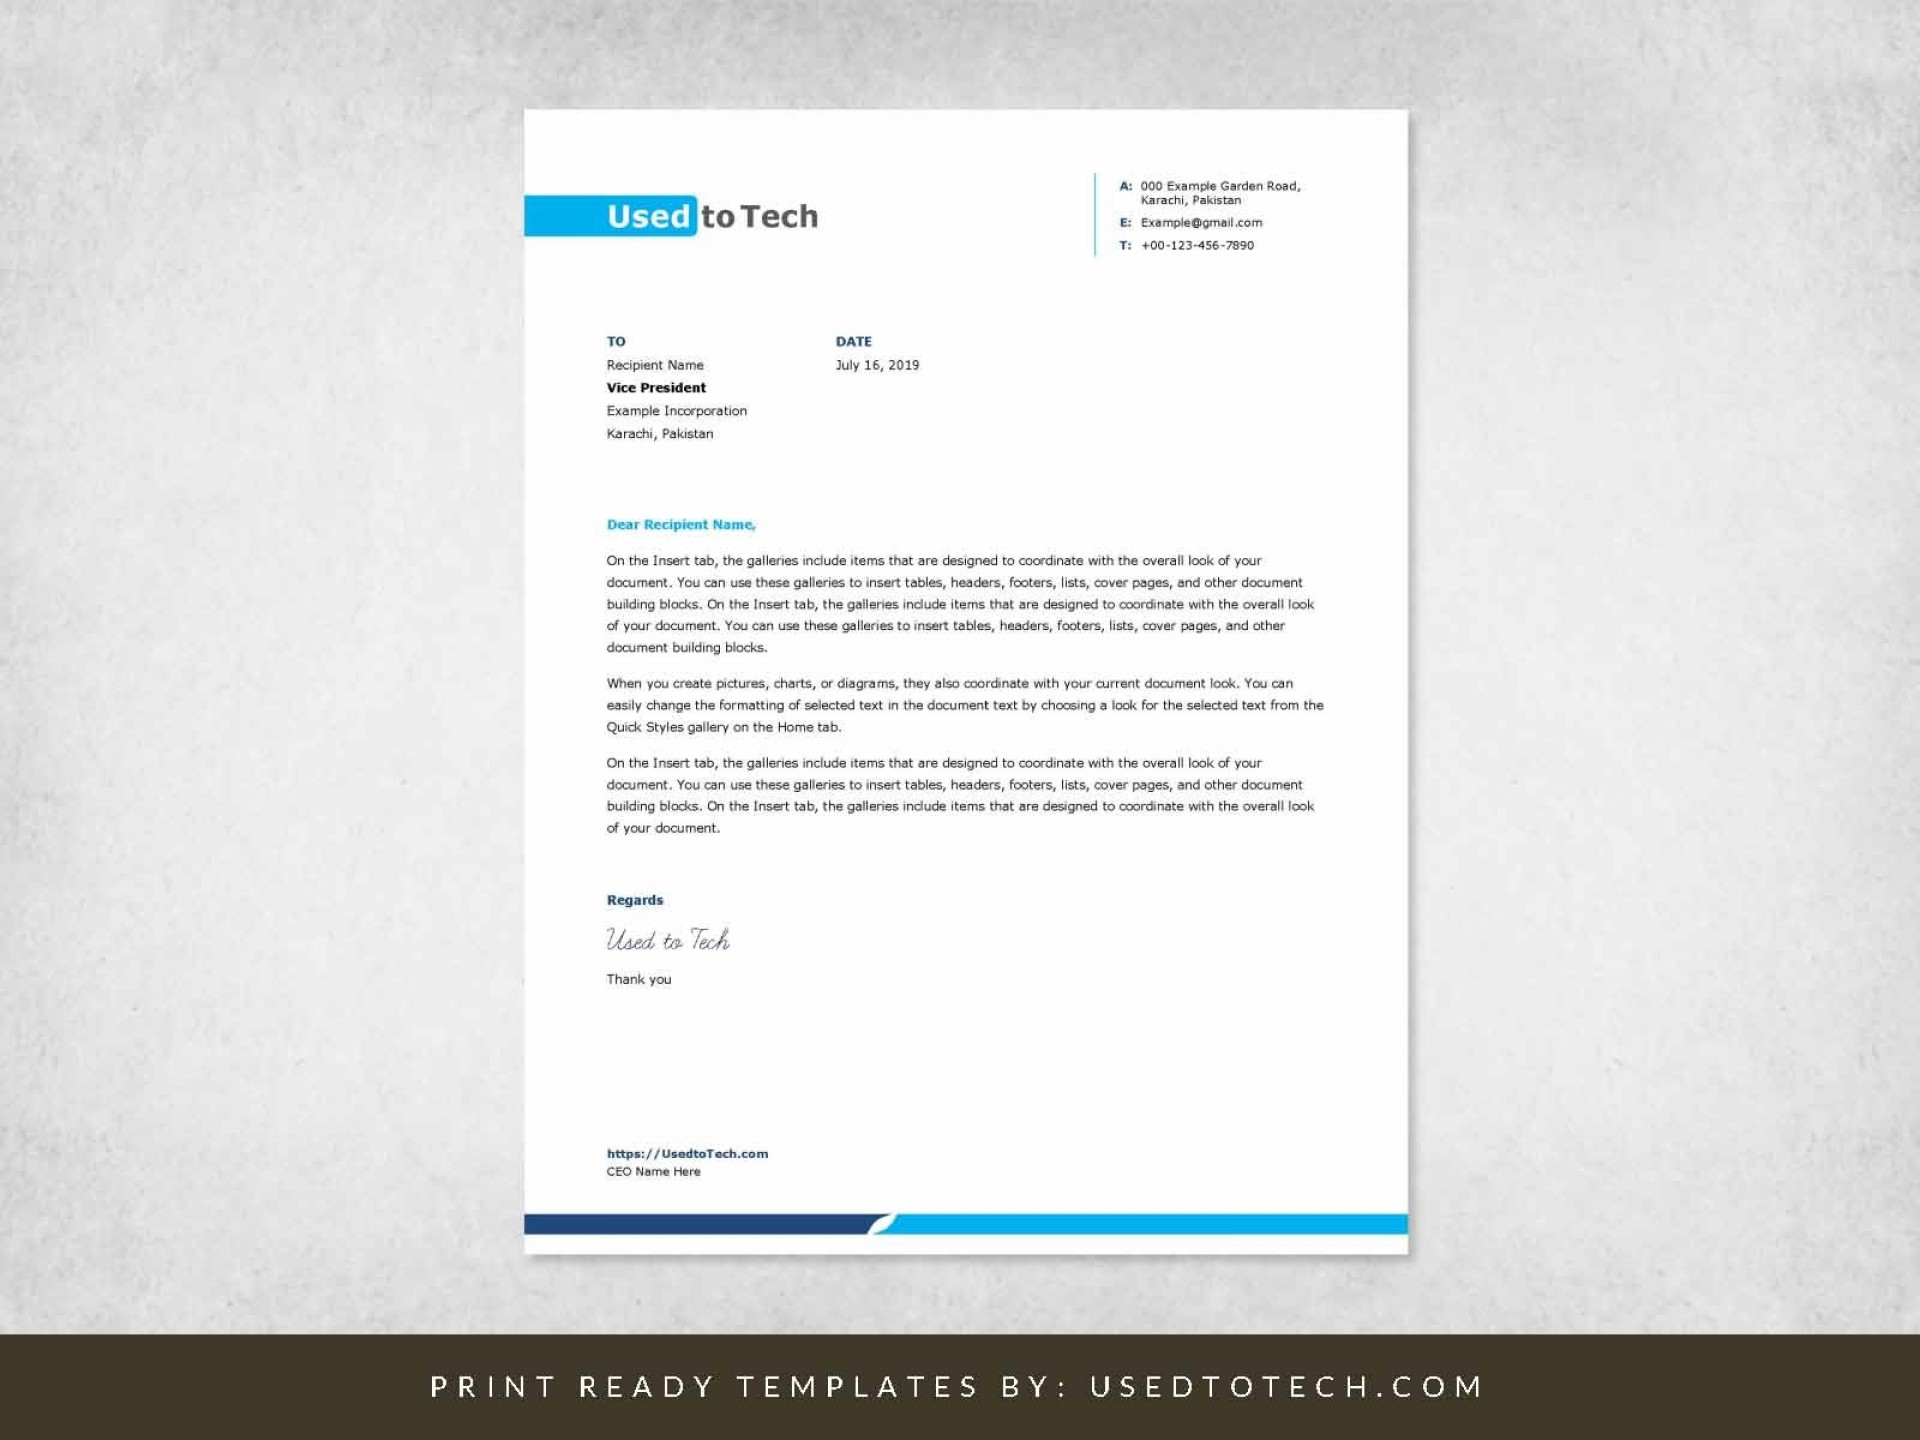 001 Stunning Letterhead Example Free Download Design  Advocate Format Hospital In Word Pdf1920